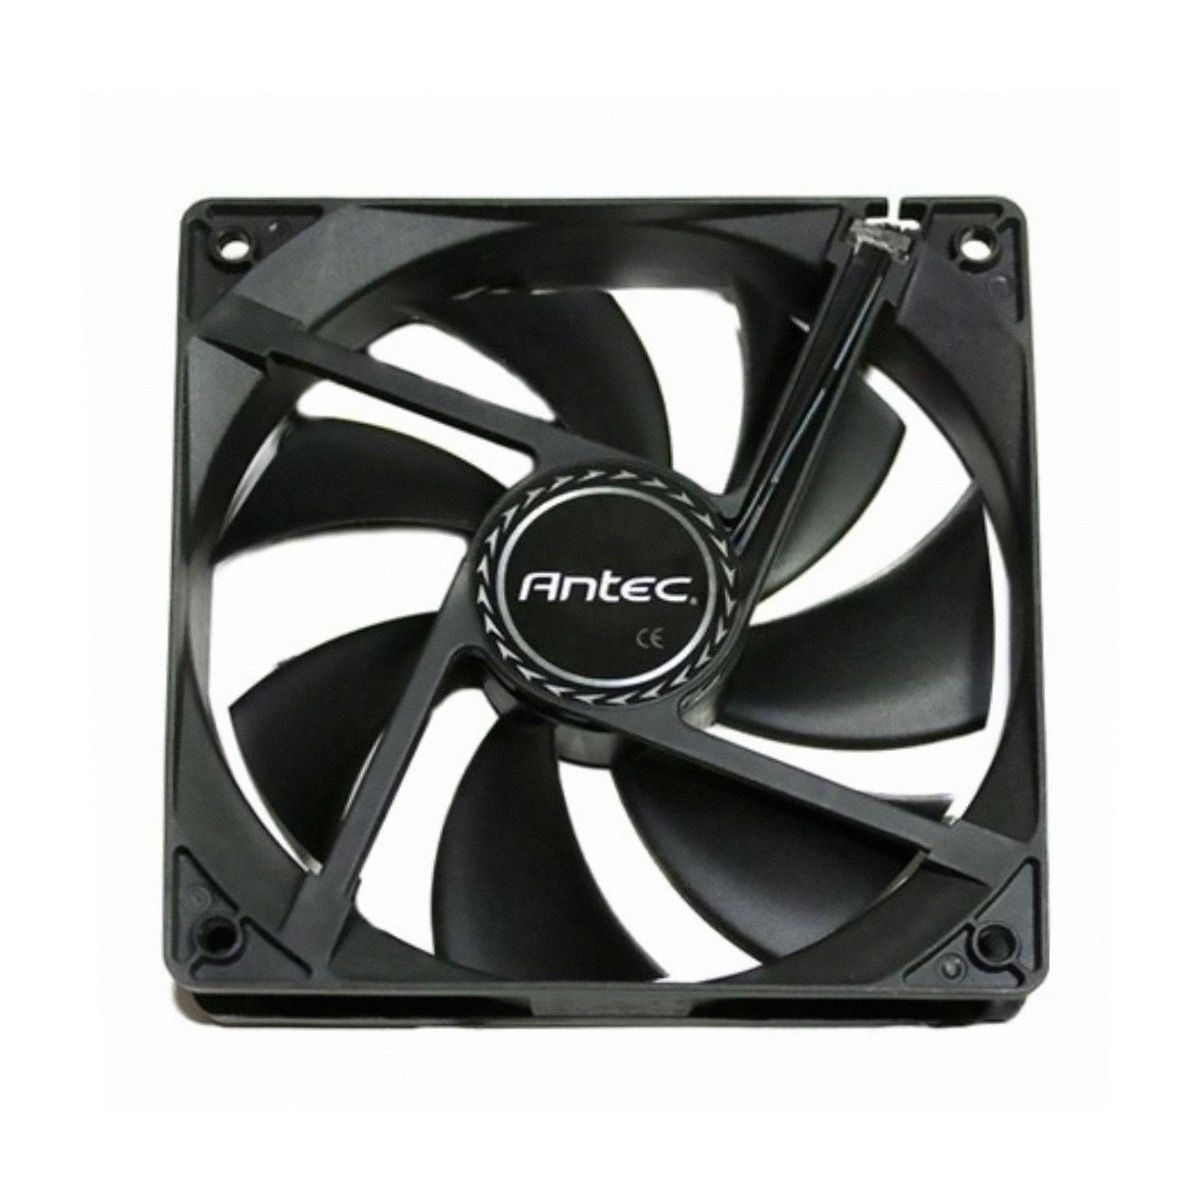 Cooler Fan 120mm Preto Antec Elf 0-761345-77056-9